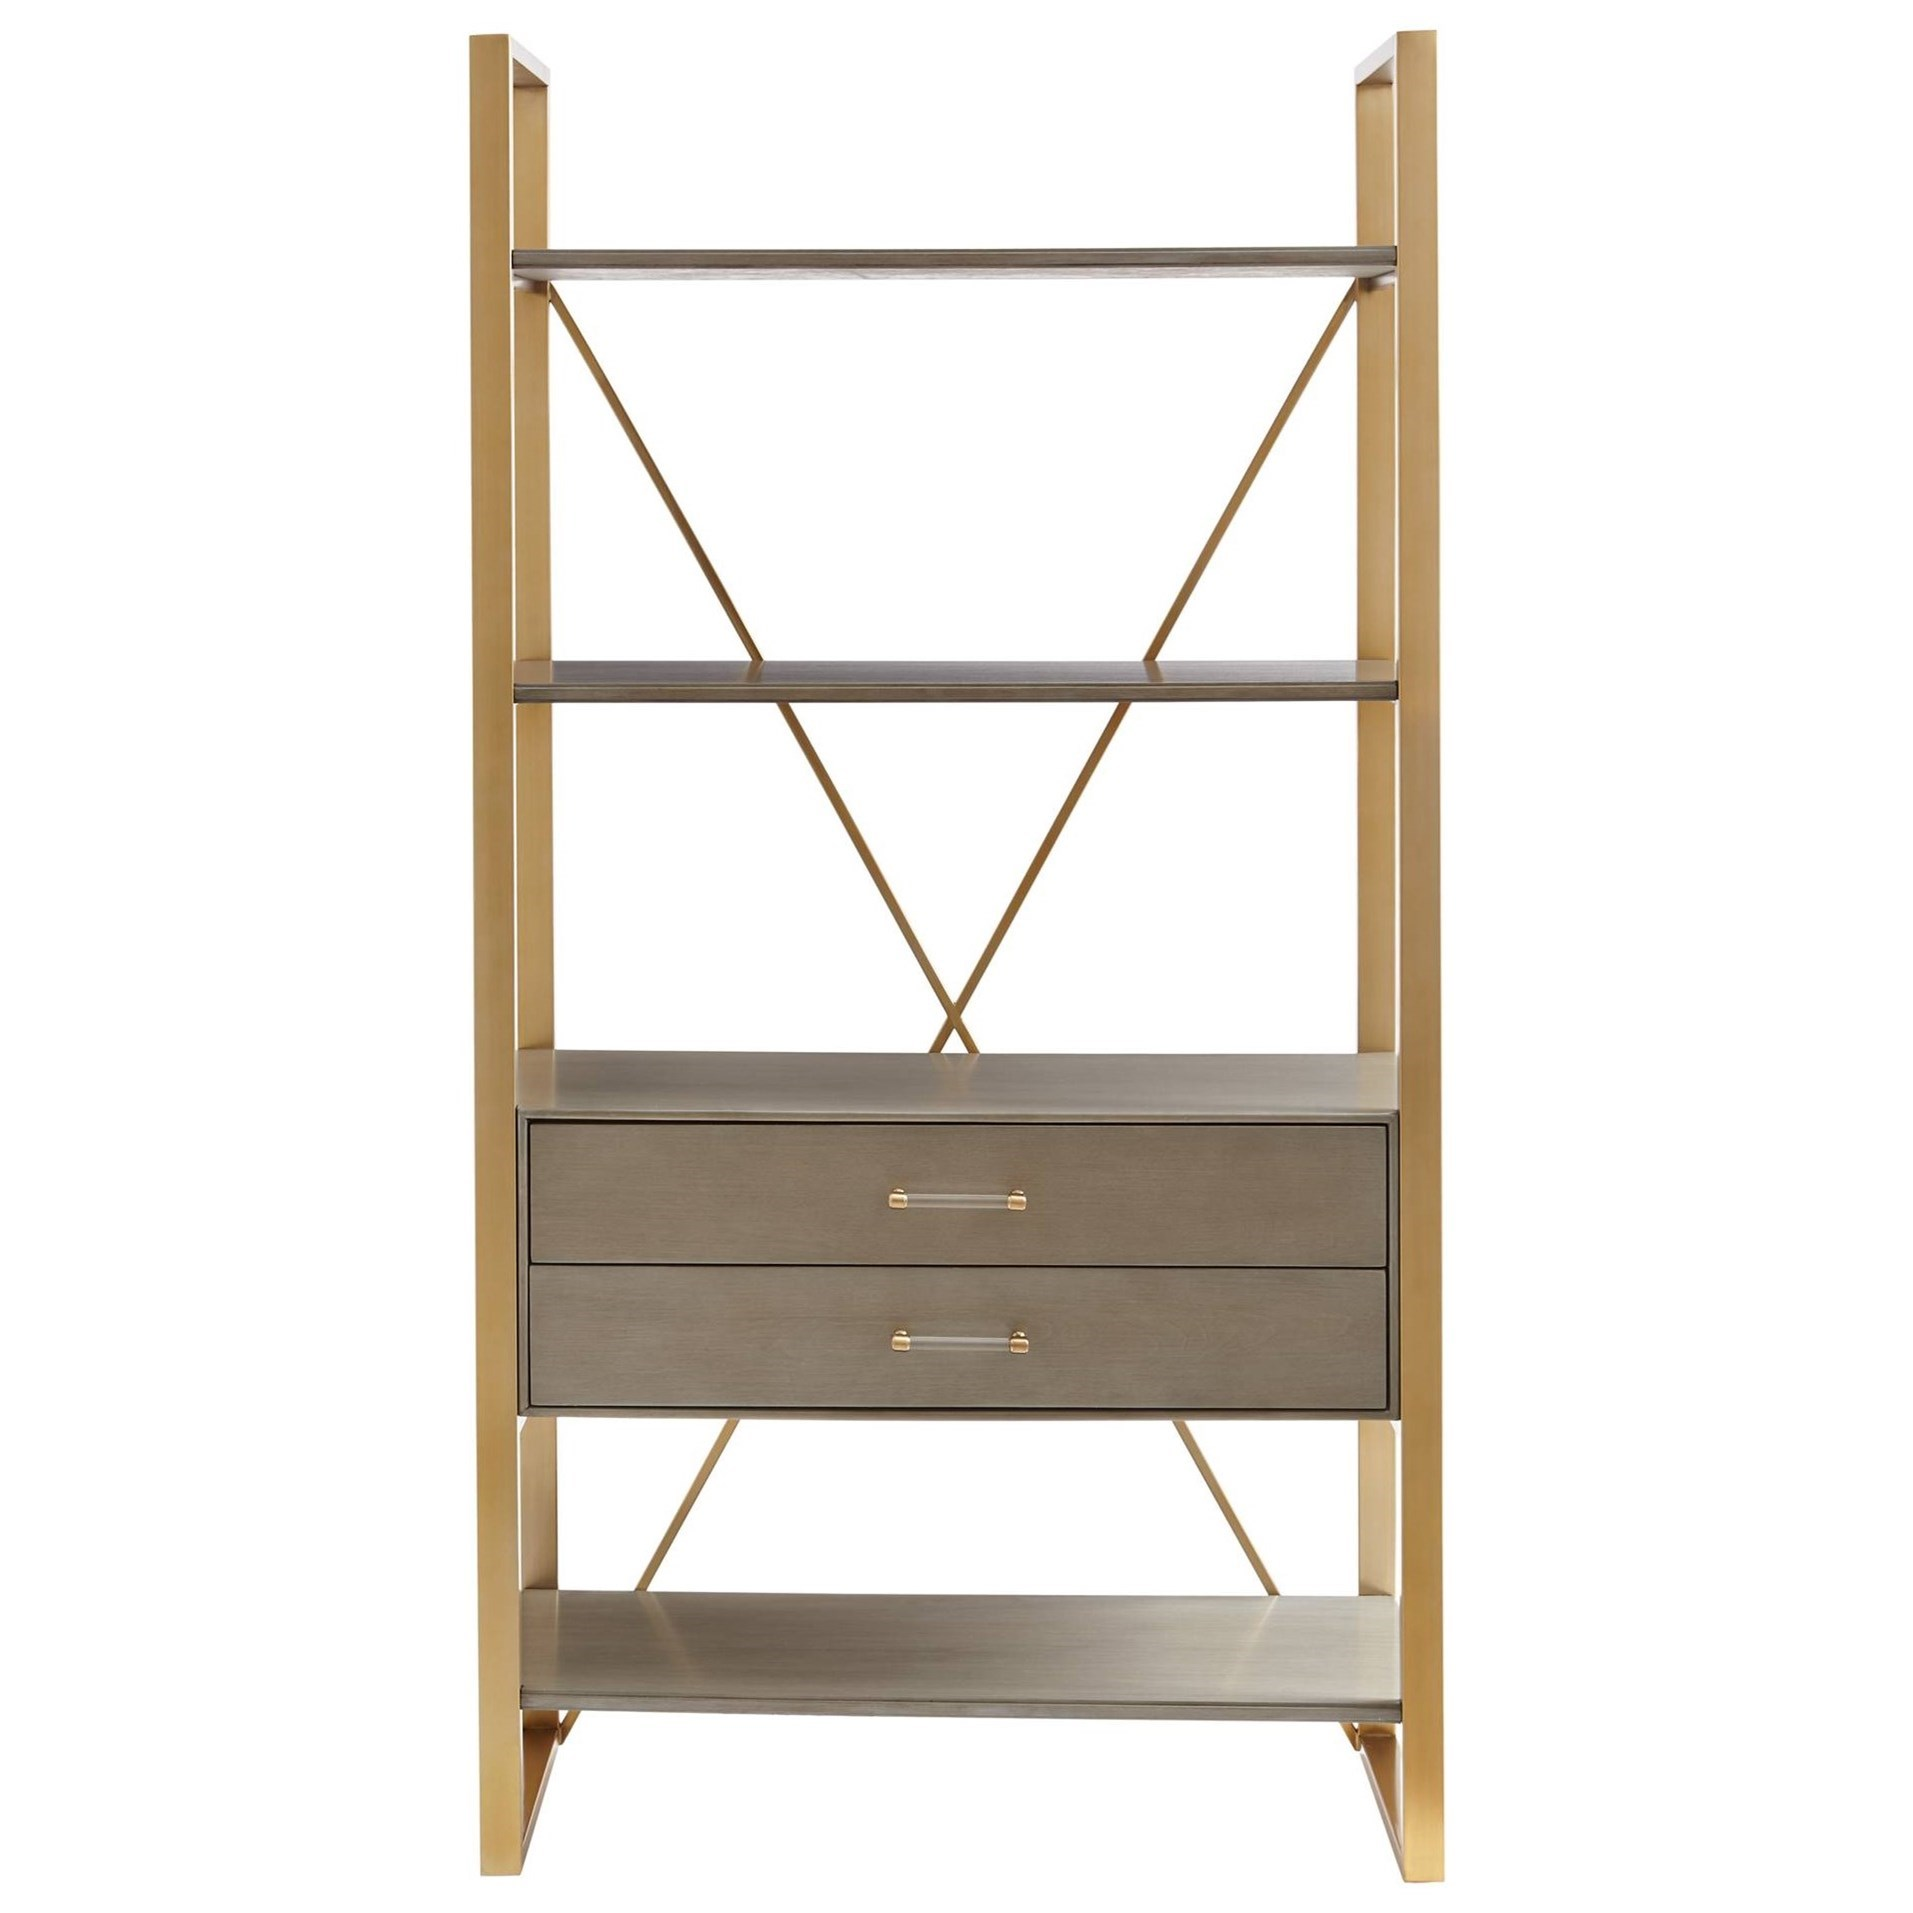 Stanley Furniture Coastal Living Oasis Harwell Bookcase - Item Number: 527-65-18